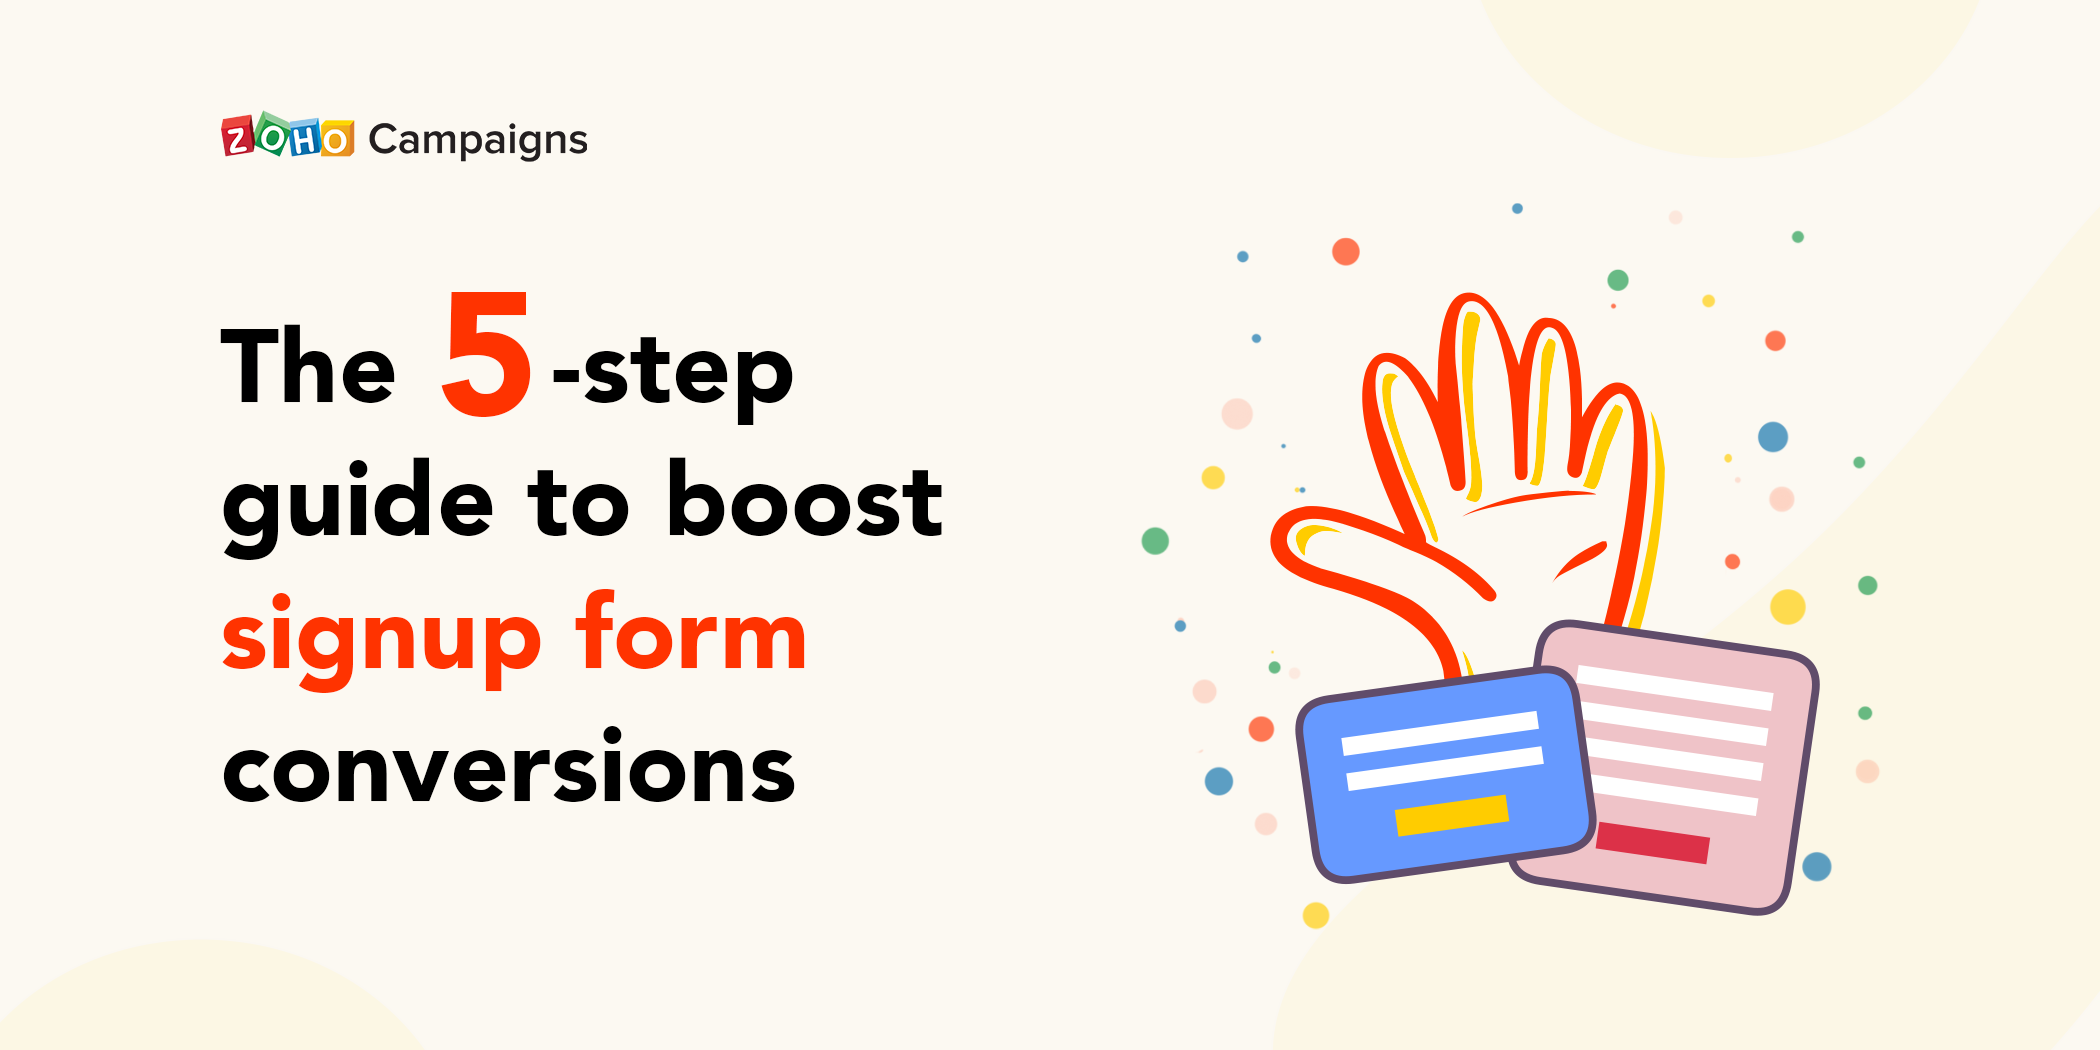 The 5-step guide to boost signup form conversions